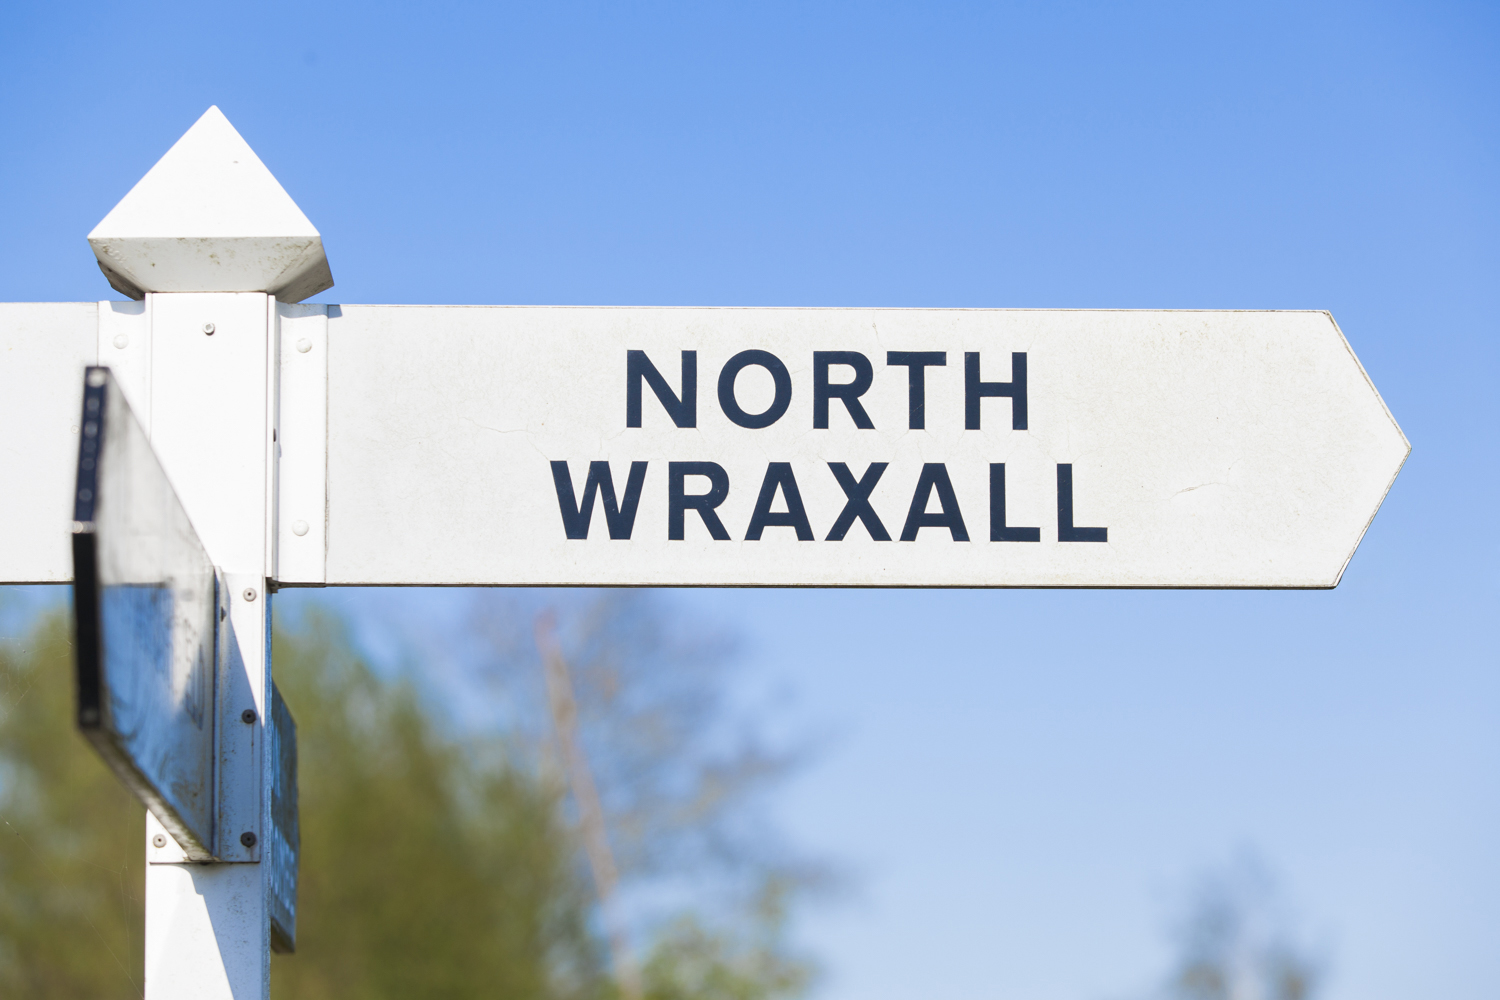 North Wraxall